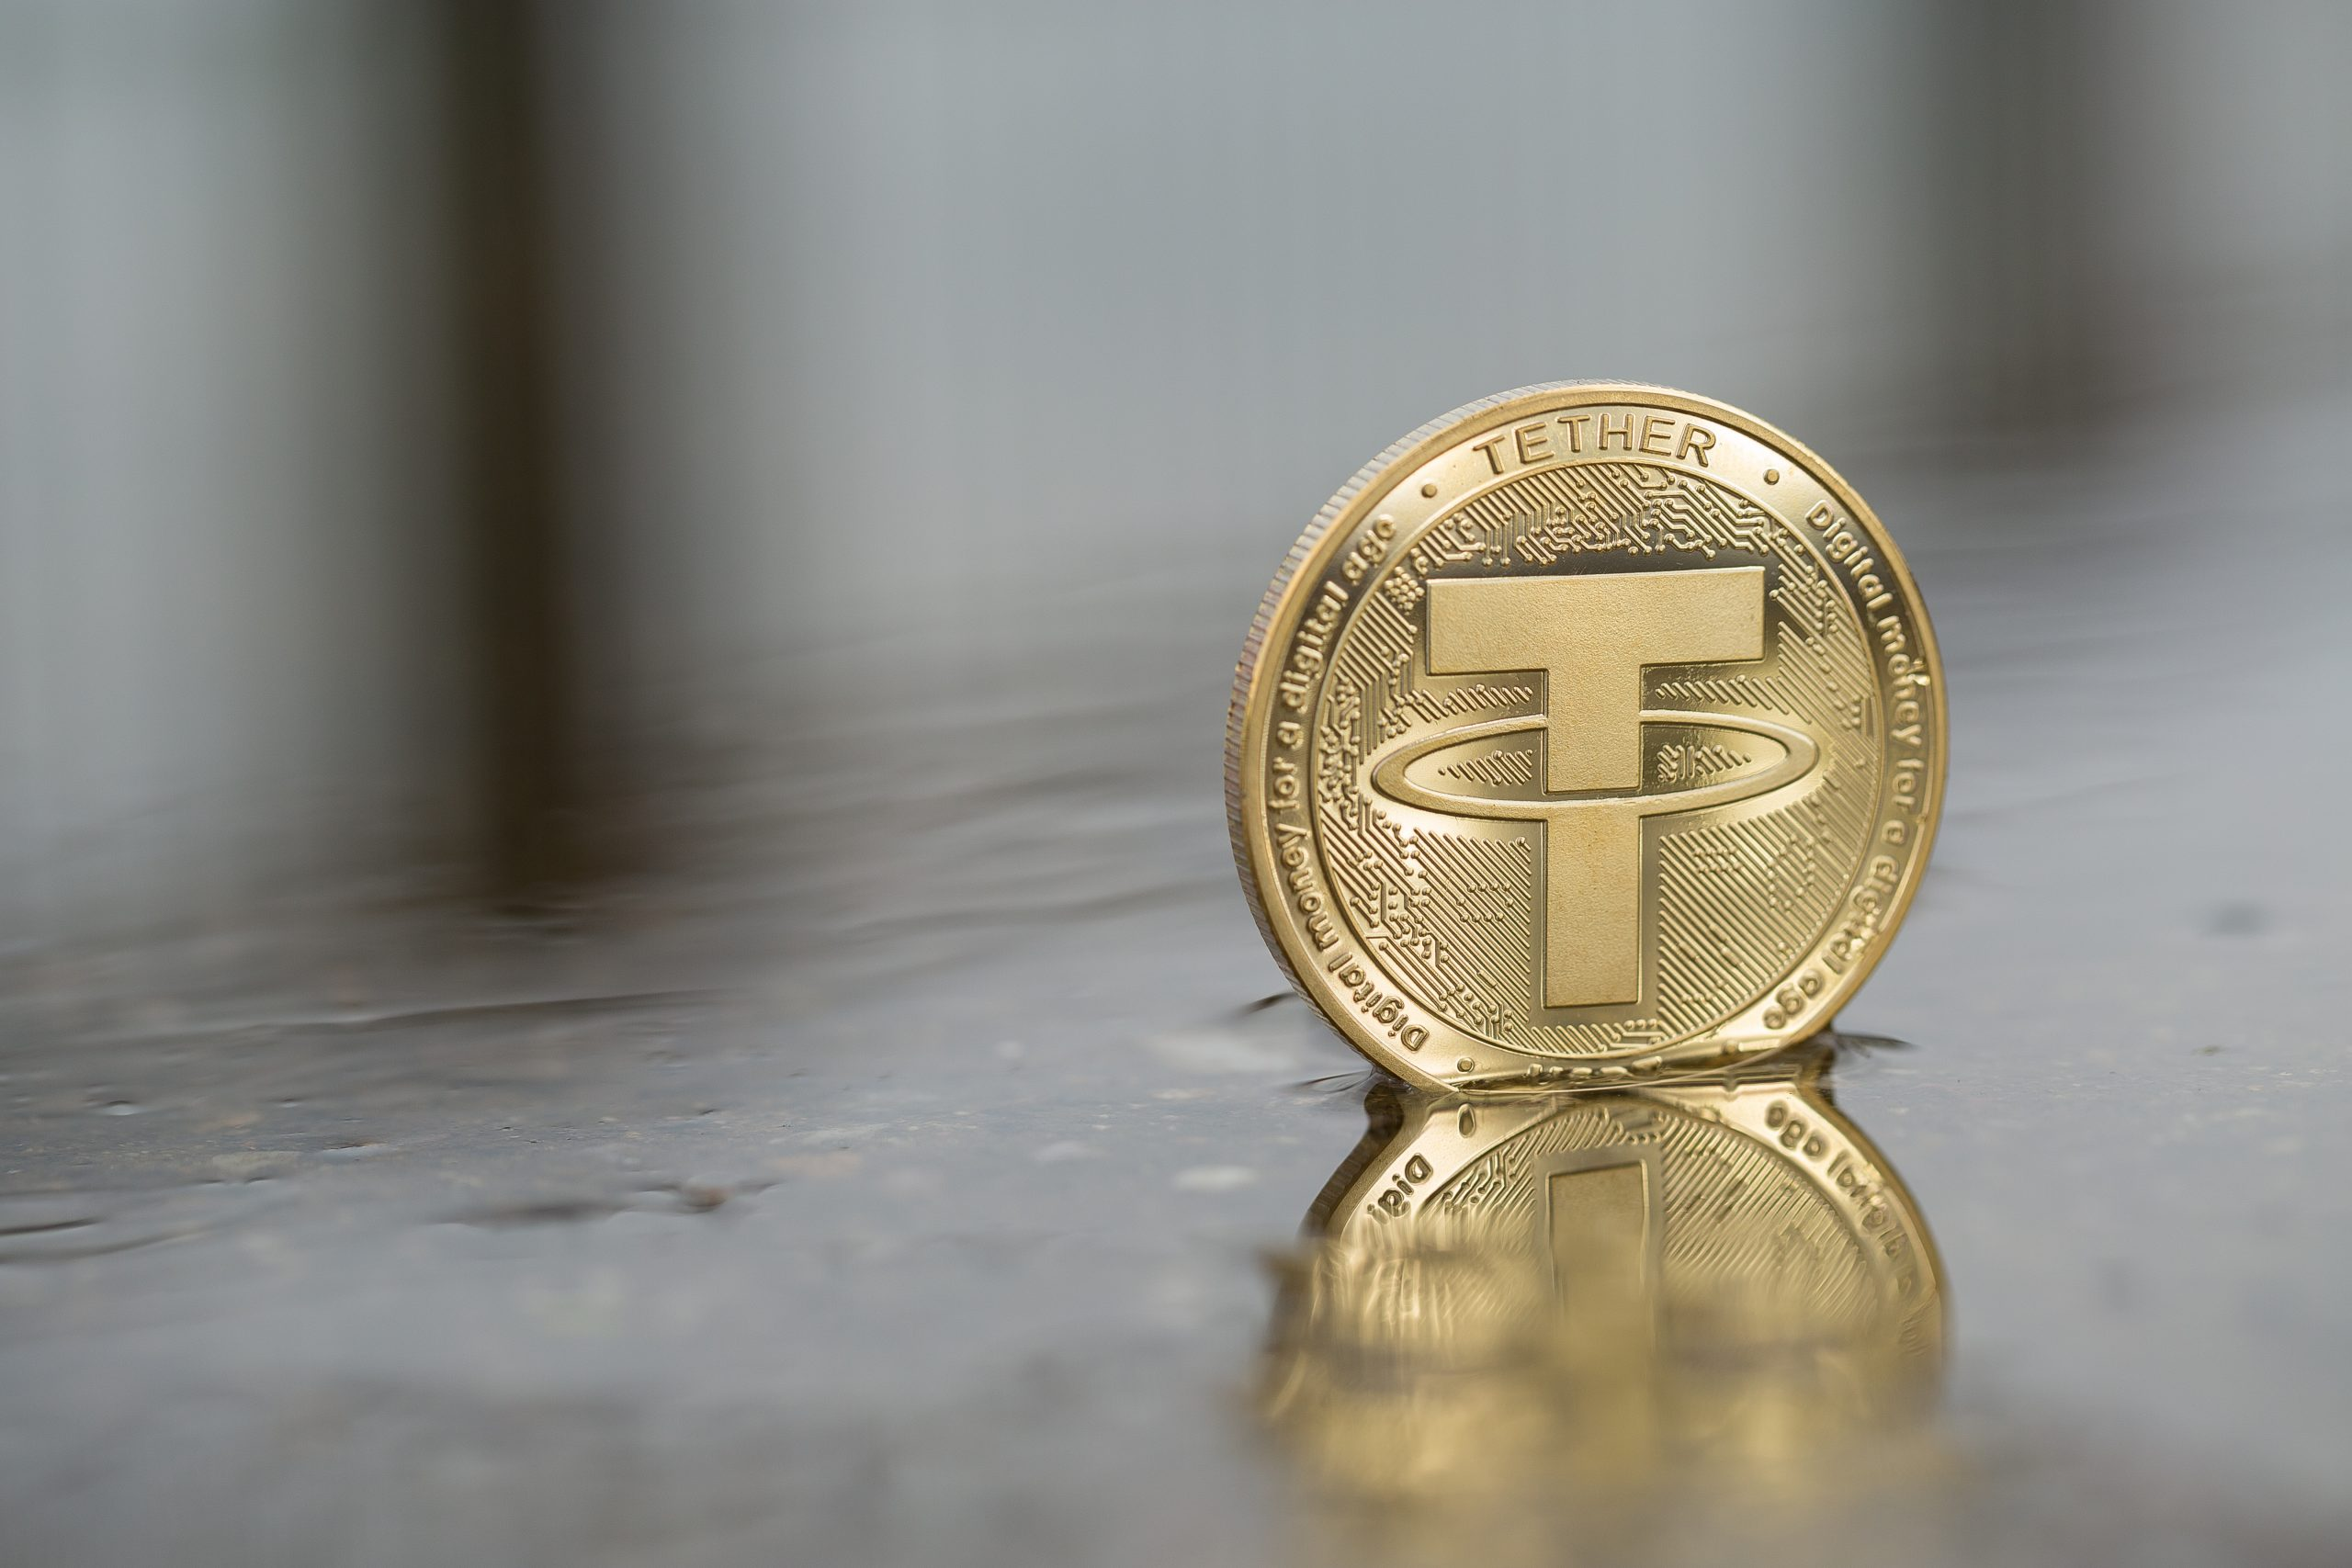 Is Tether Genuine a Scam to Enrich Bitcoin Investors?